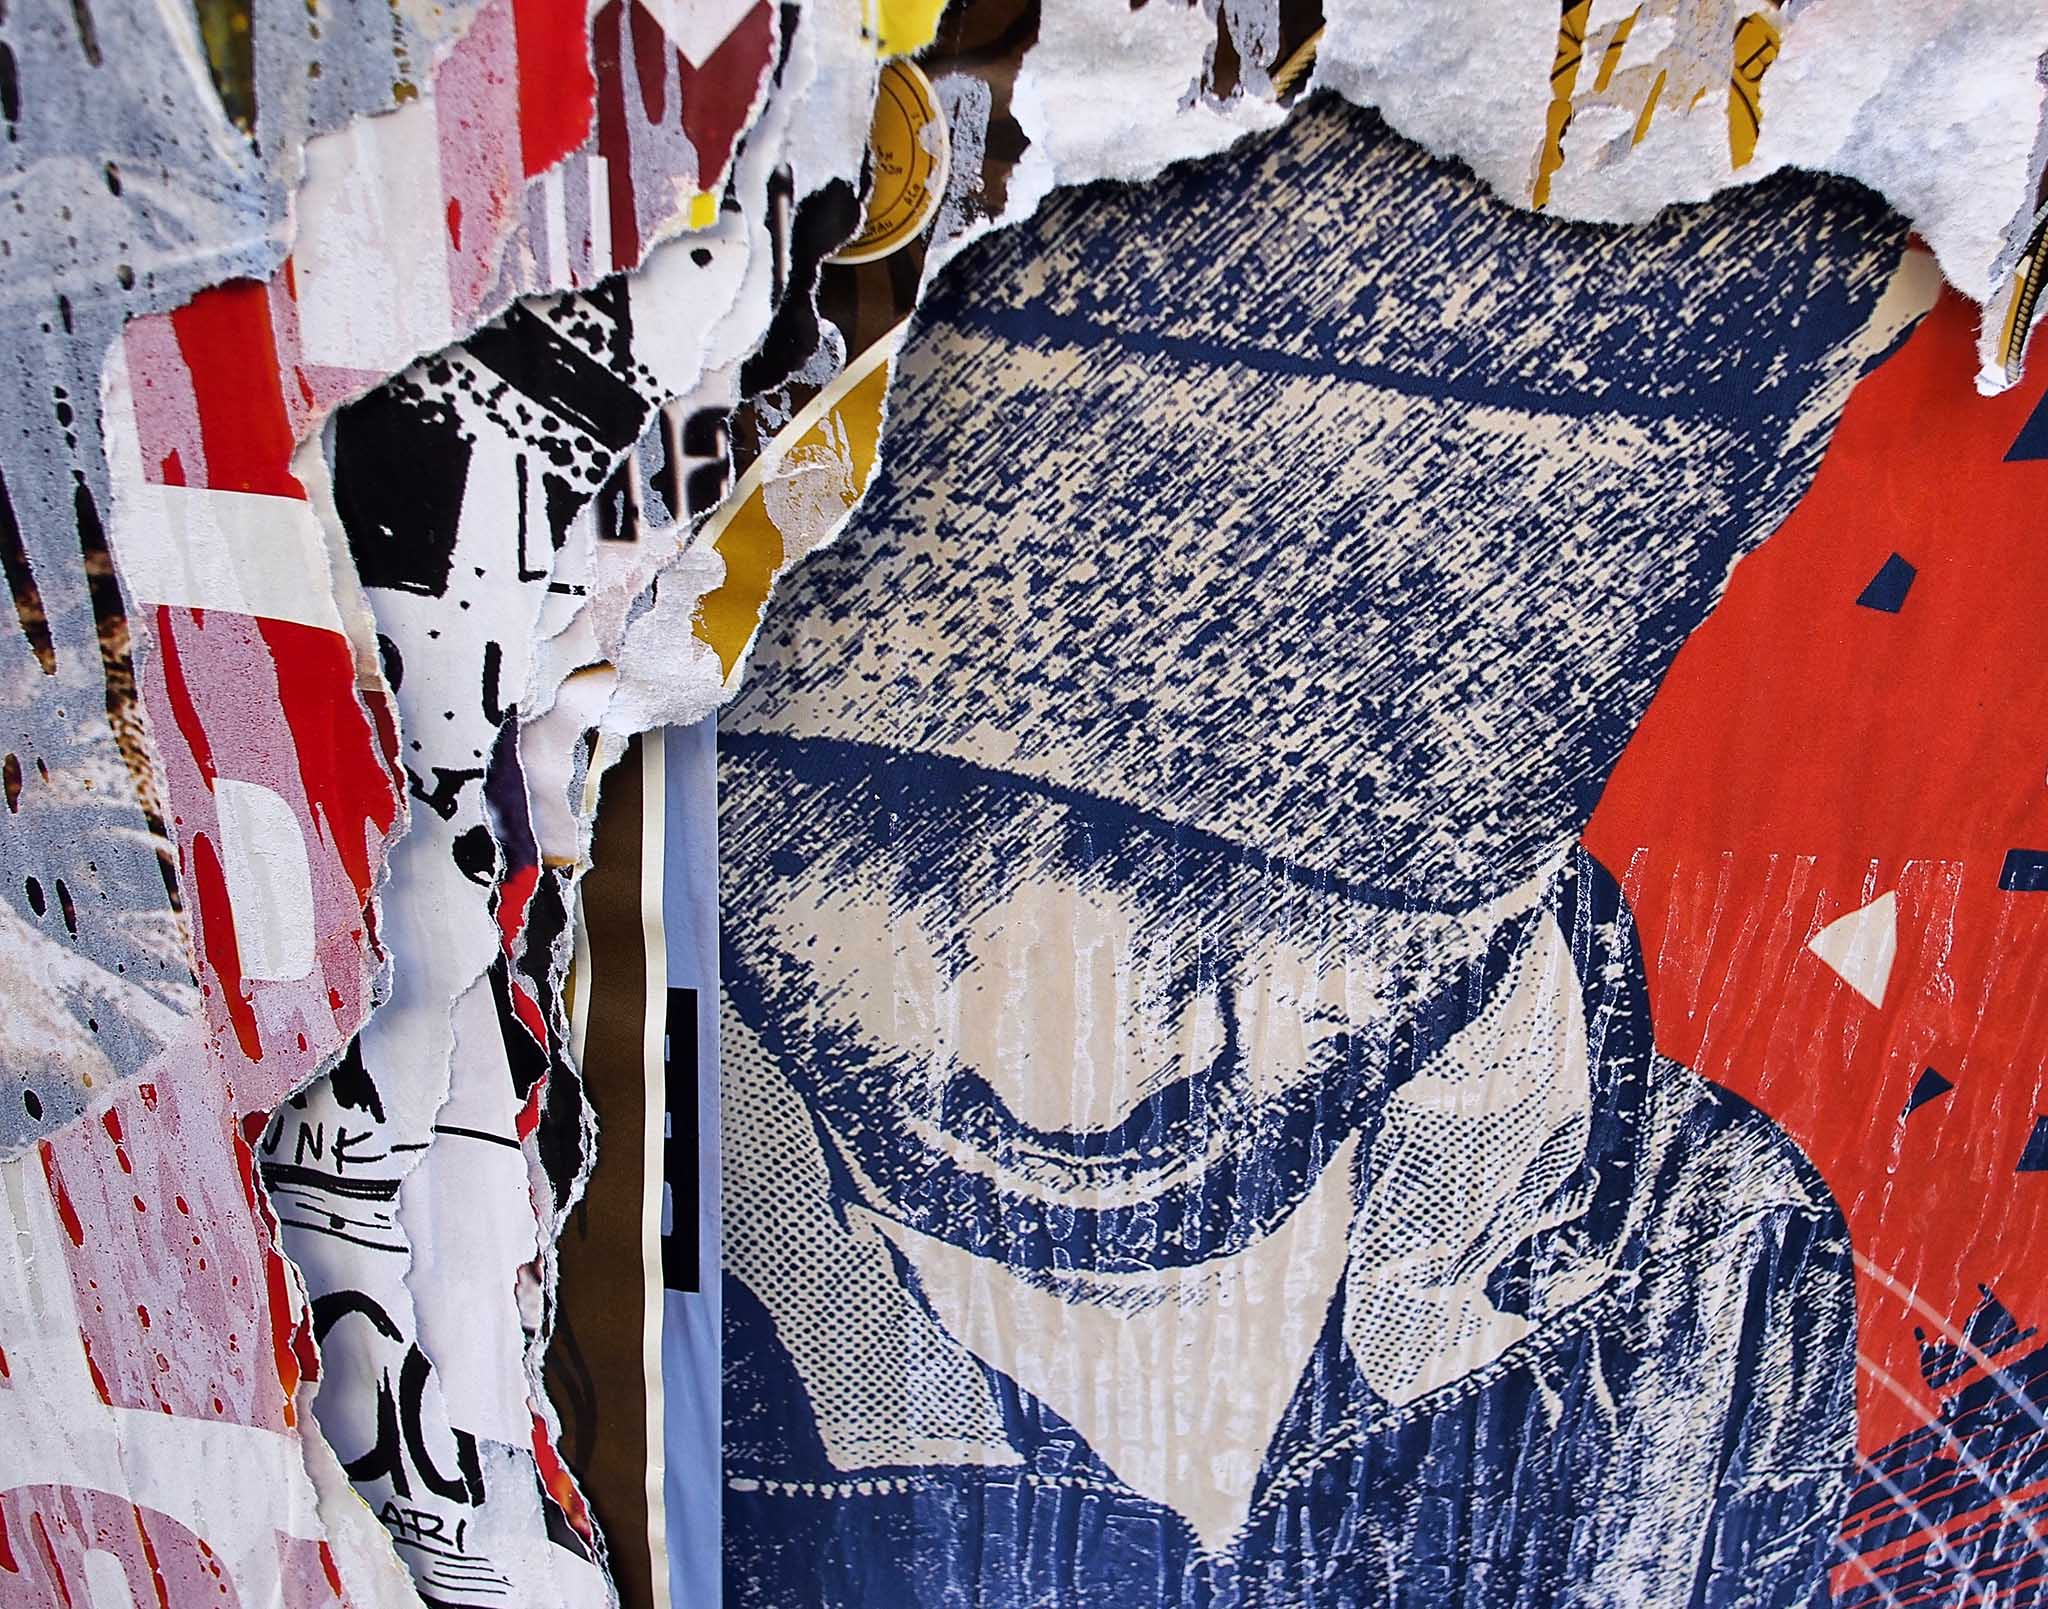 Melinda Isachsen JANIS Photography & Fine Art TORN street posters by Jan Isachsen